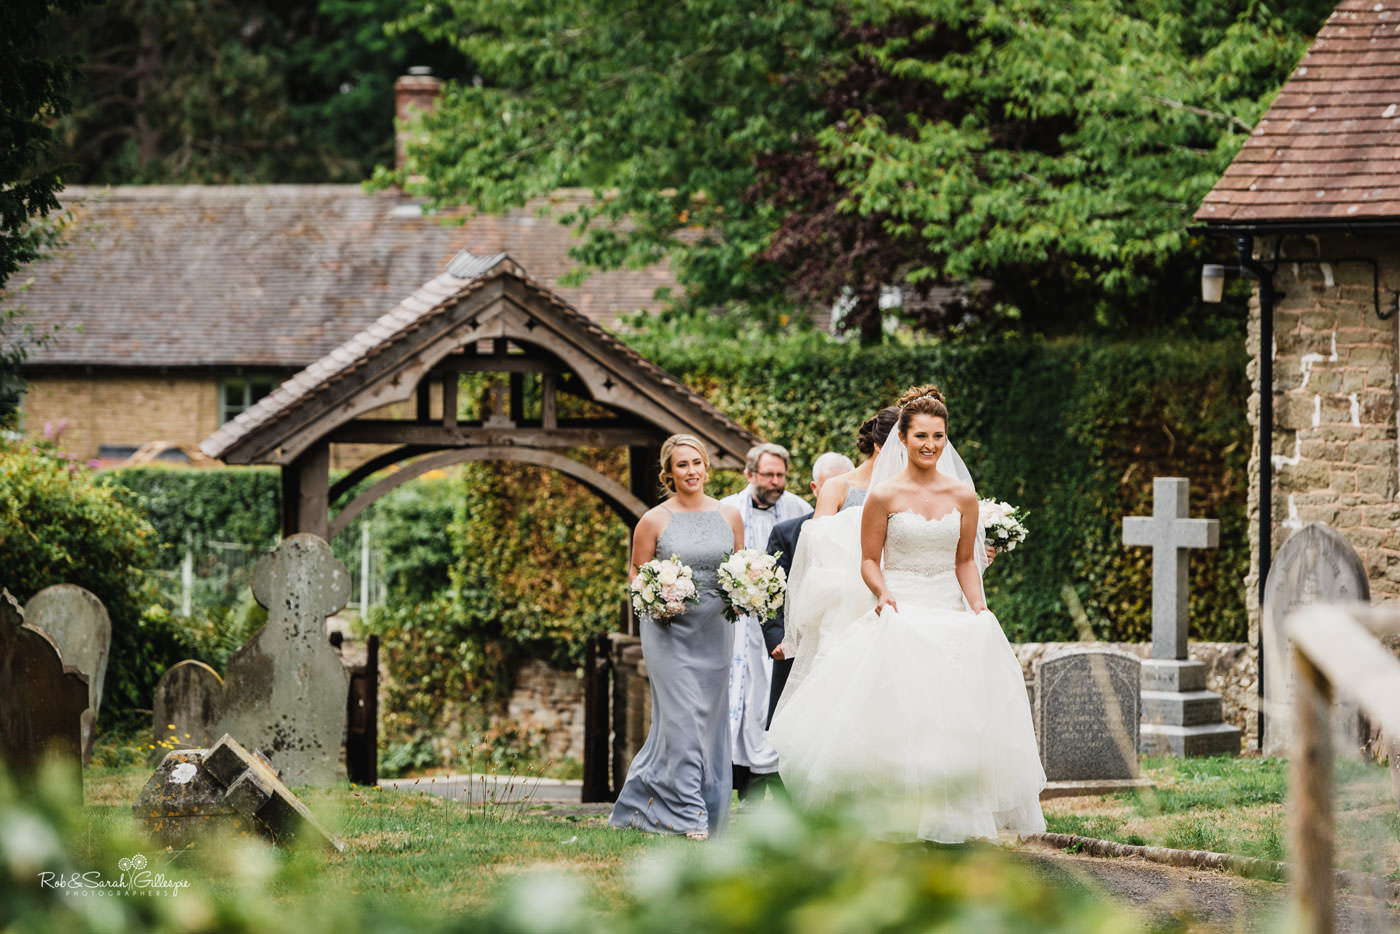 Bride and bridesmaids walk towards St Peter's Church in Diddlebury, Shropshire